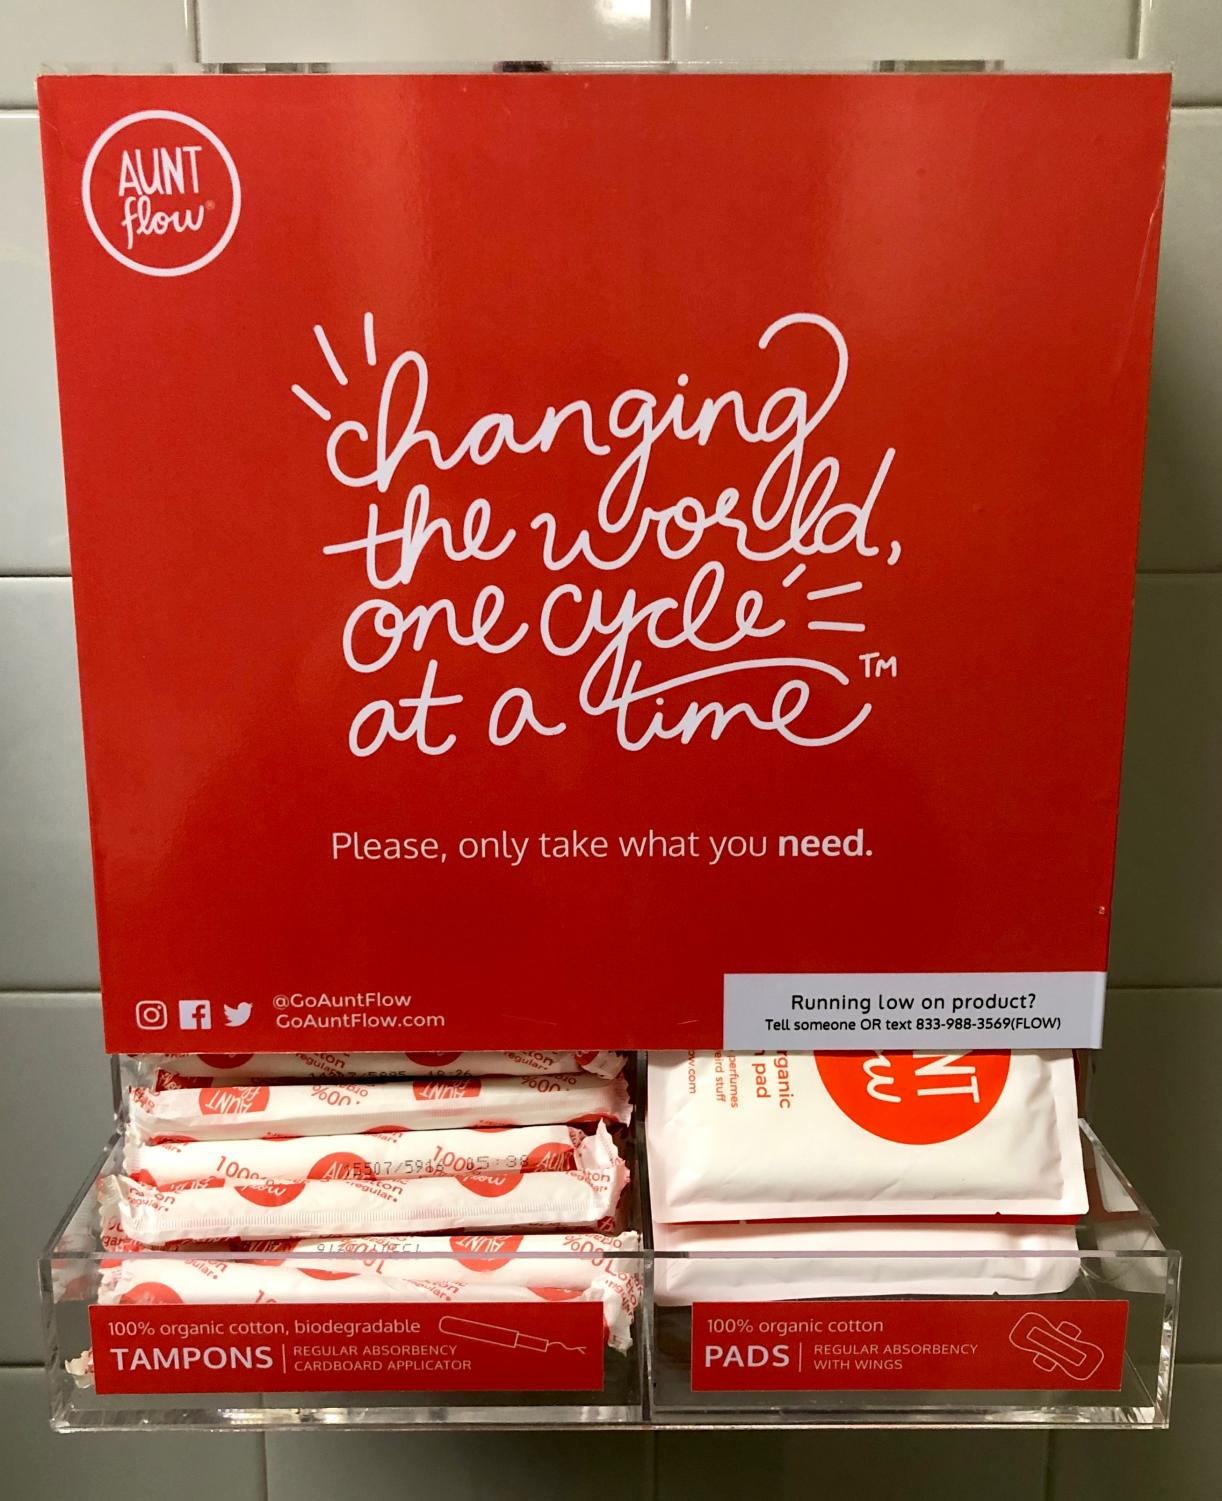 Menstrual products from Aunt Flow, a company that donates one product for every 10 tampons and pads sold, are available in the girls' restrooms at Haverford High School.